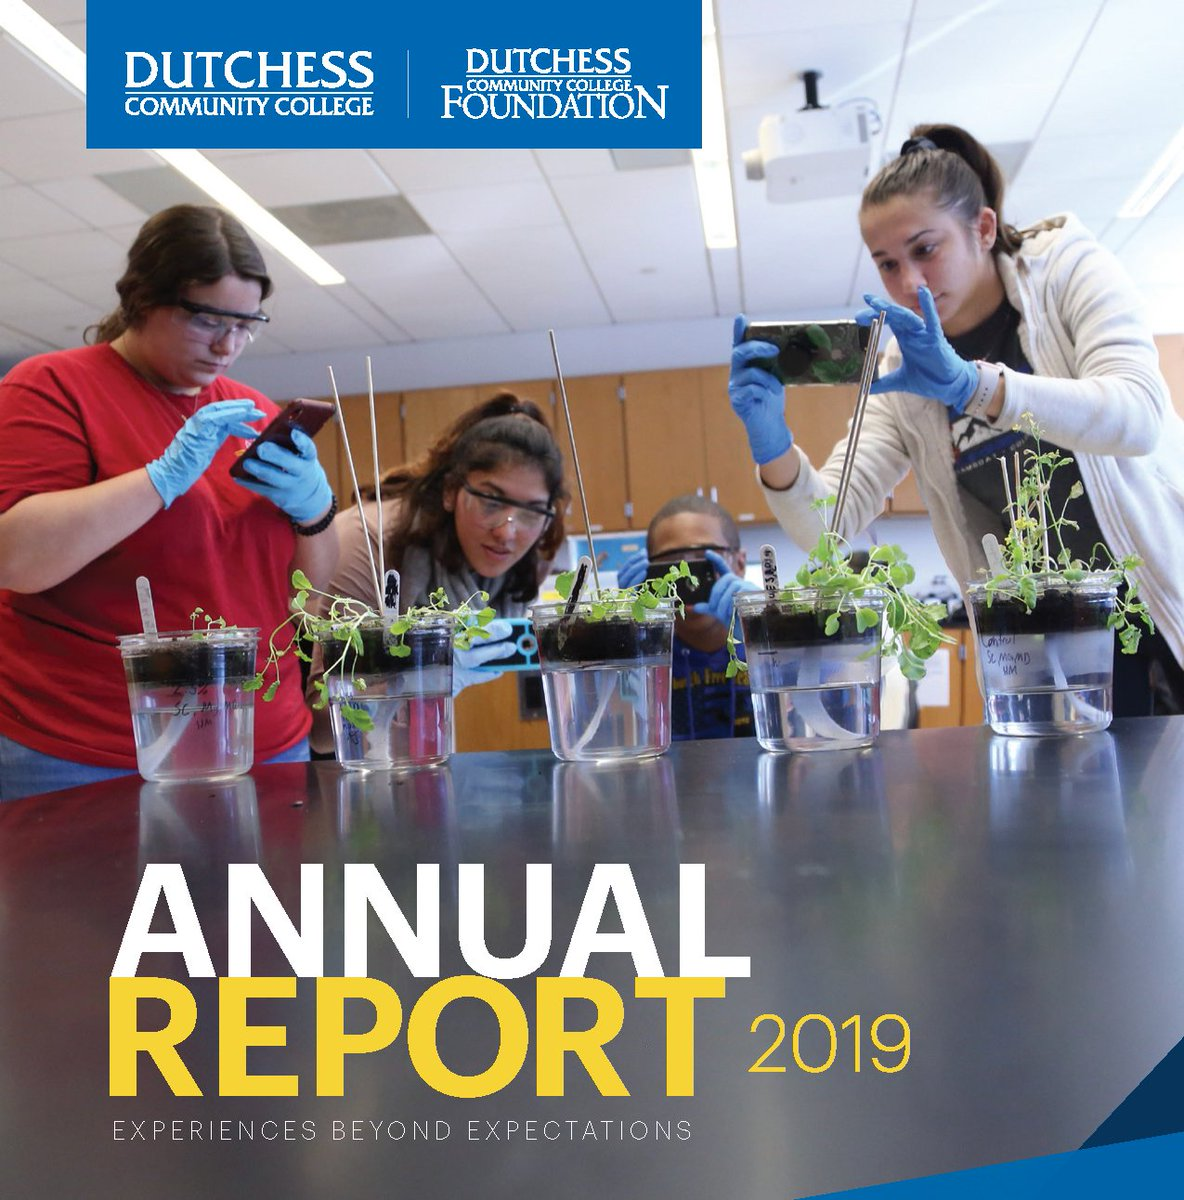 Check out the DCC and @Dccfalumni 2019 annual report highlighting the past year's accomplishments and features the students, faculty, staff, benefactors and community members who make DCC one of the most highly regarded community colleges in NY. Visit http://www.sunydutchess.edu/annualreport